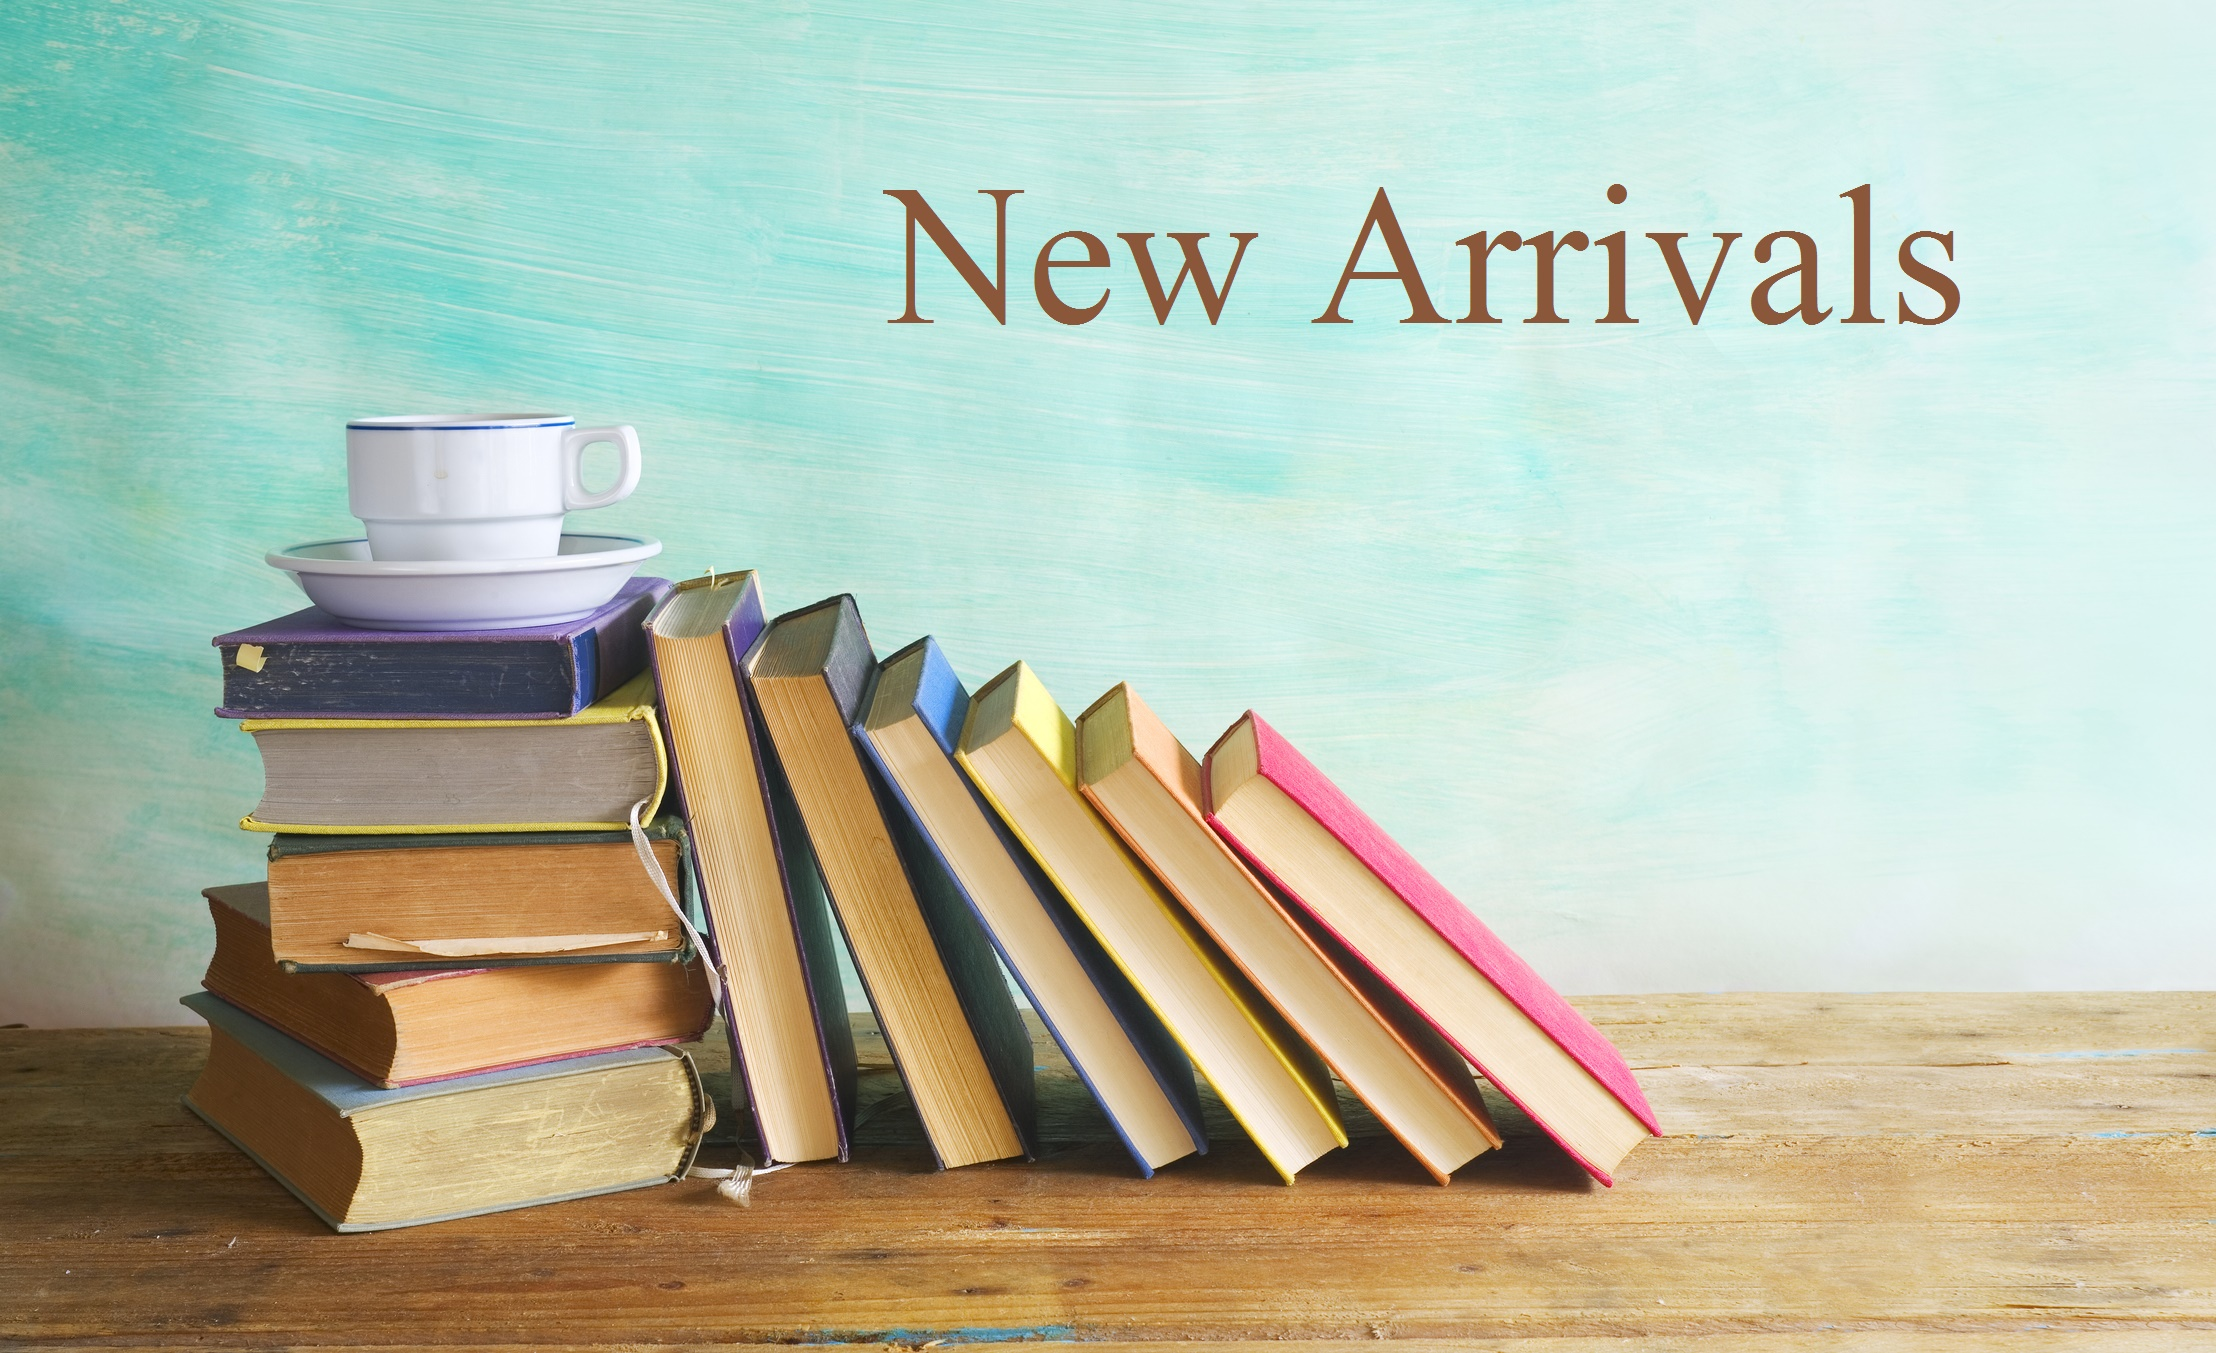 New Arrivals | City of Lytle, TX - Official Website